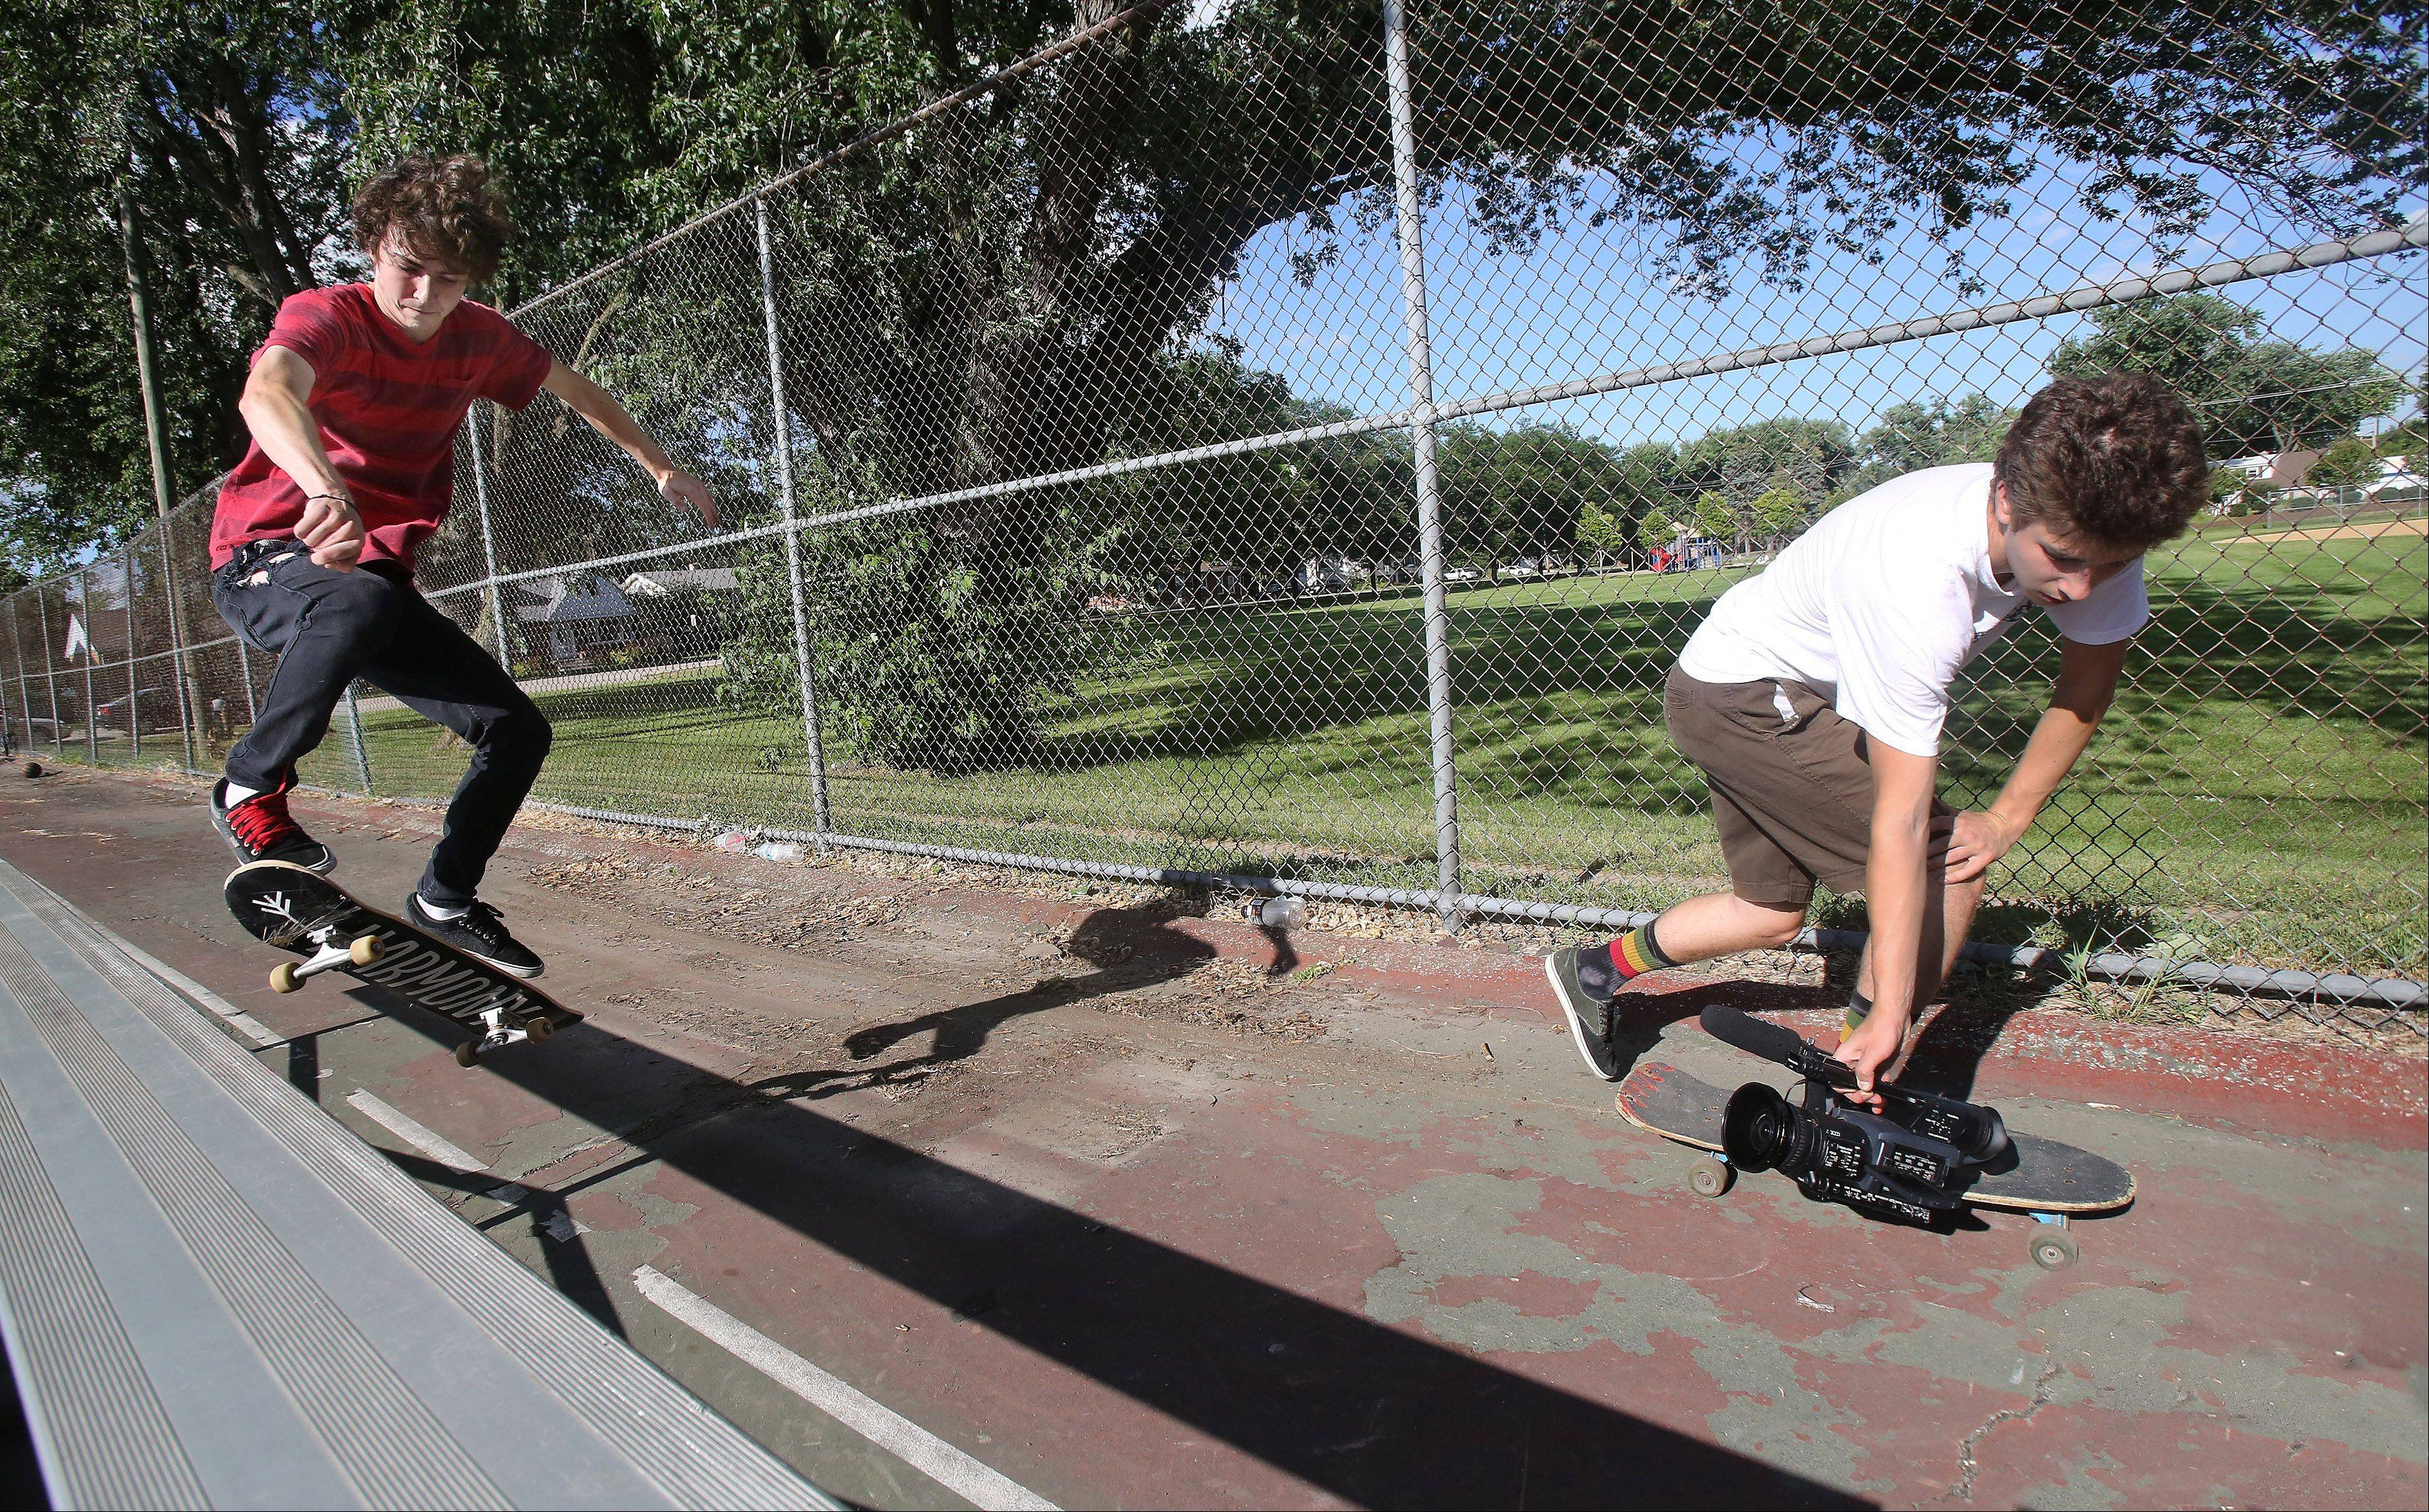 Videographer Max Kollman of Libertyville shoots video of street skateboarder Matt Satchell of Libertyville at an outdoor basketball court in McHenry. Kollman, 18, documents the gritty aspects of the sport using high-end video equipment.